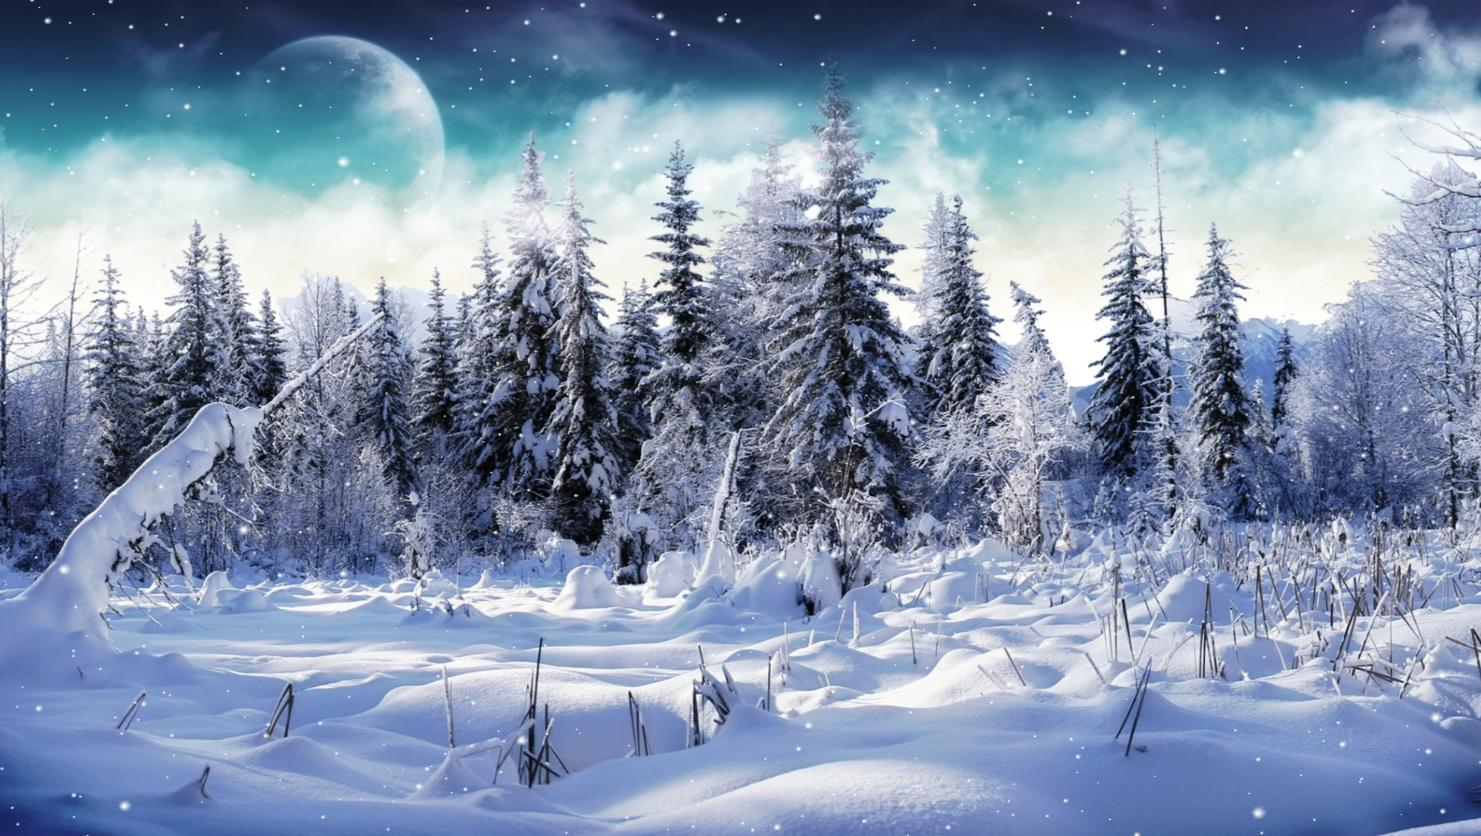 Winter Wallpapers And Screensavers Cold Winter Screensaver Animated Wallpaper Torrent Download